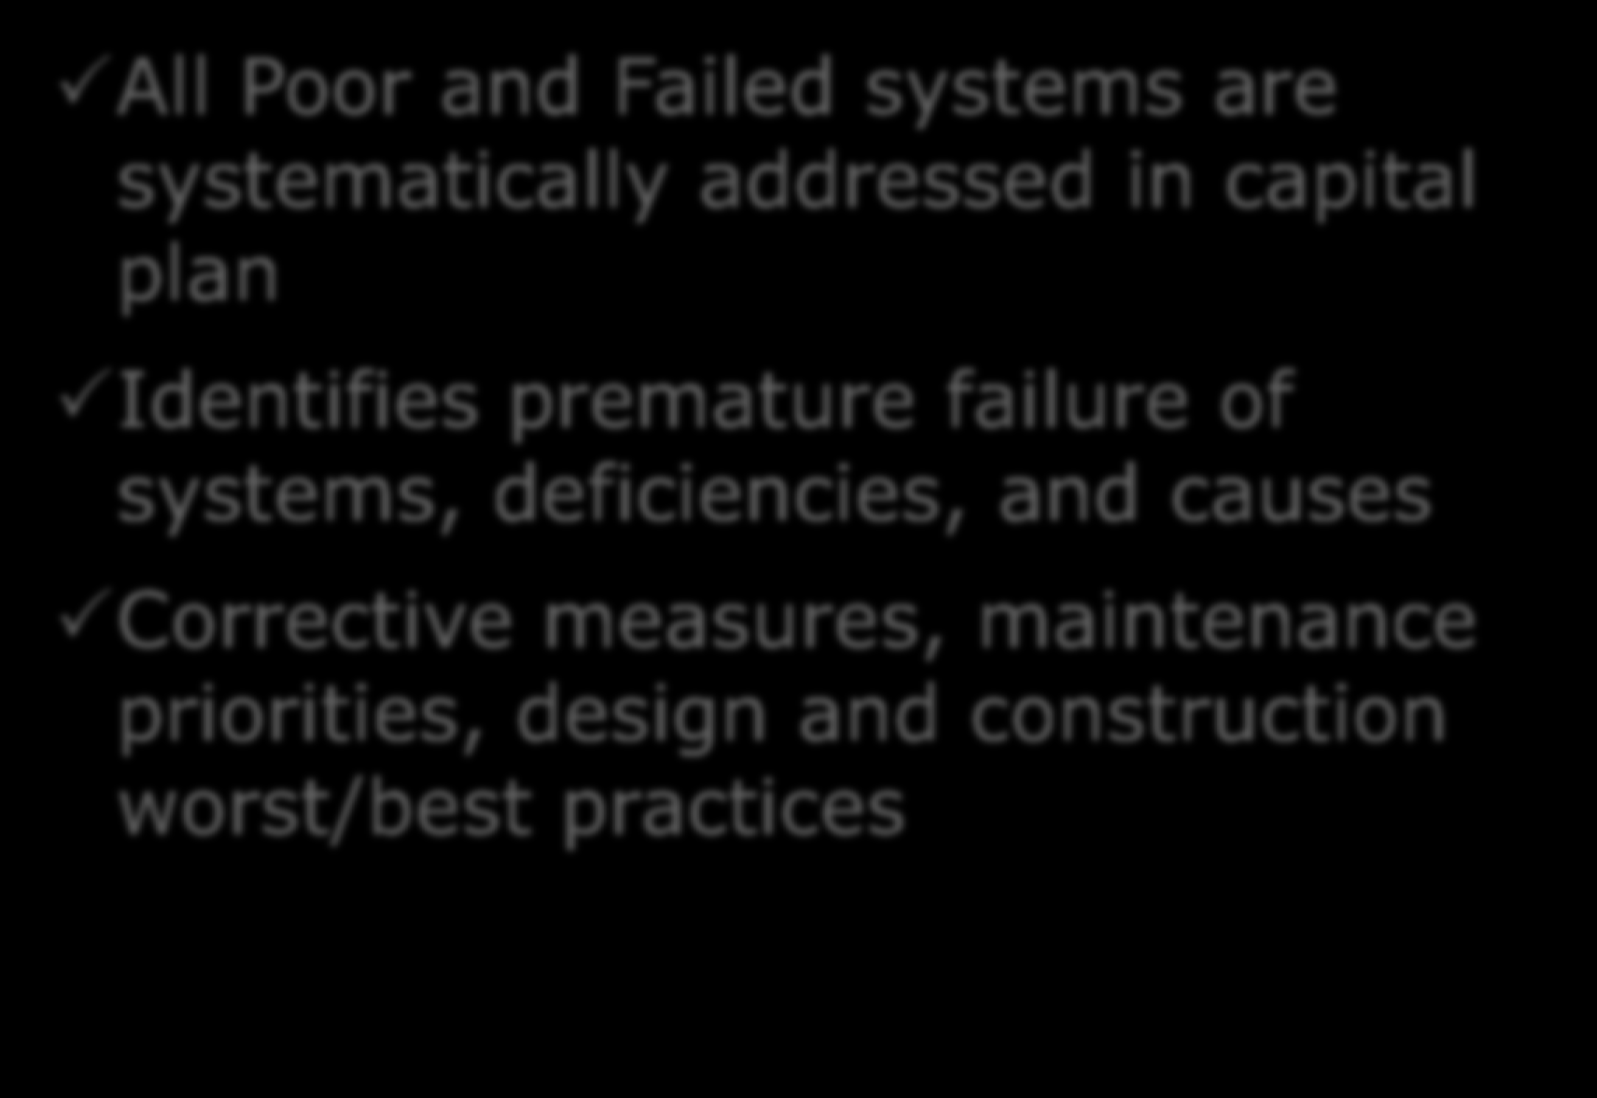 FCA Results All Poor and Failed systems are systematically addressed in capital plan Identifies premature failure of